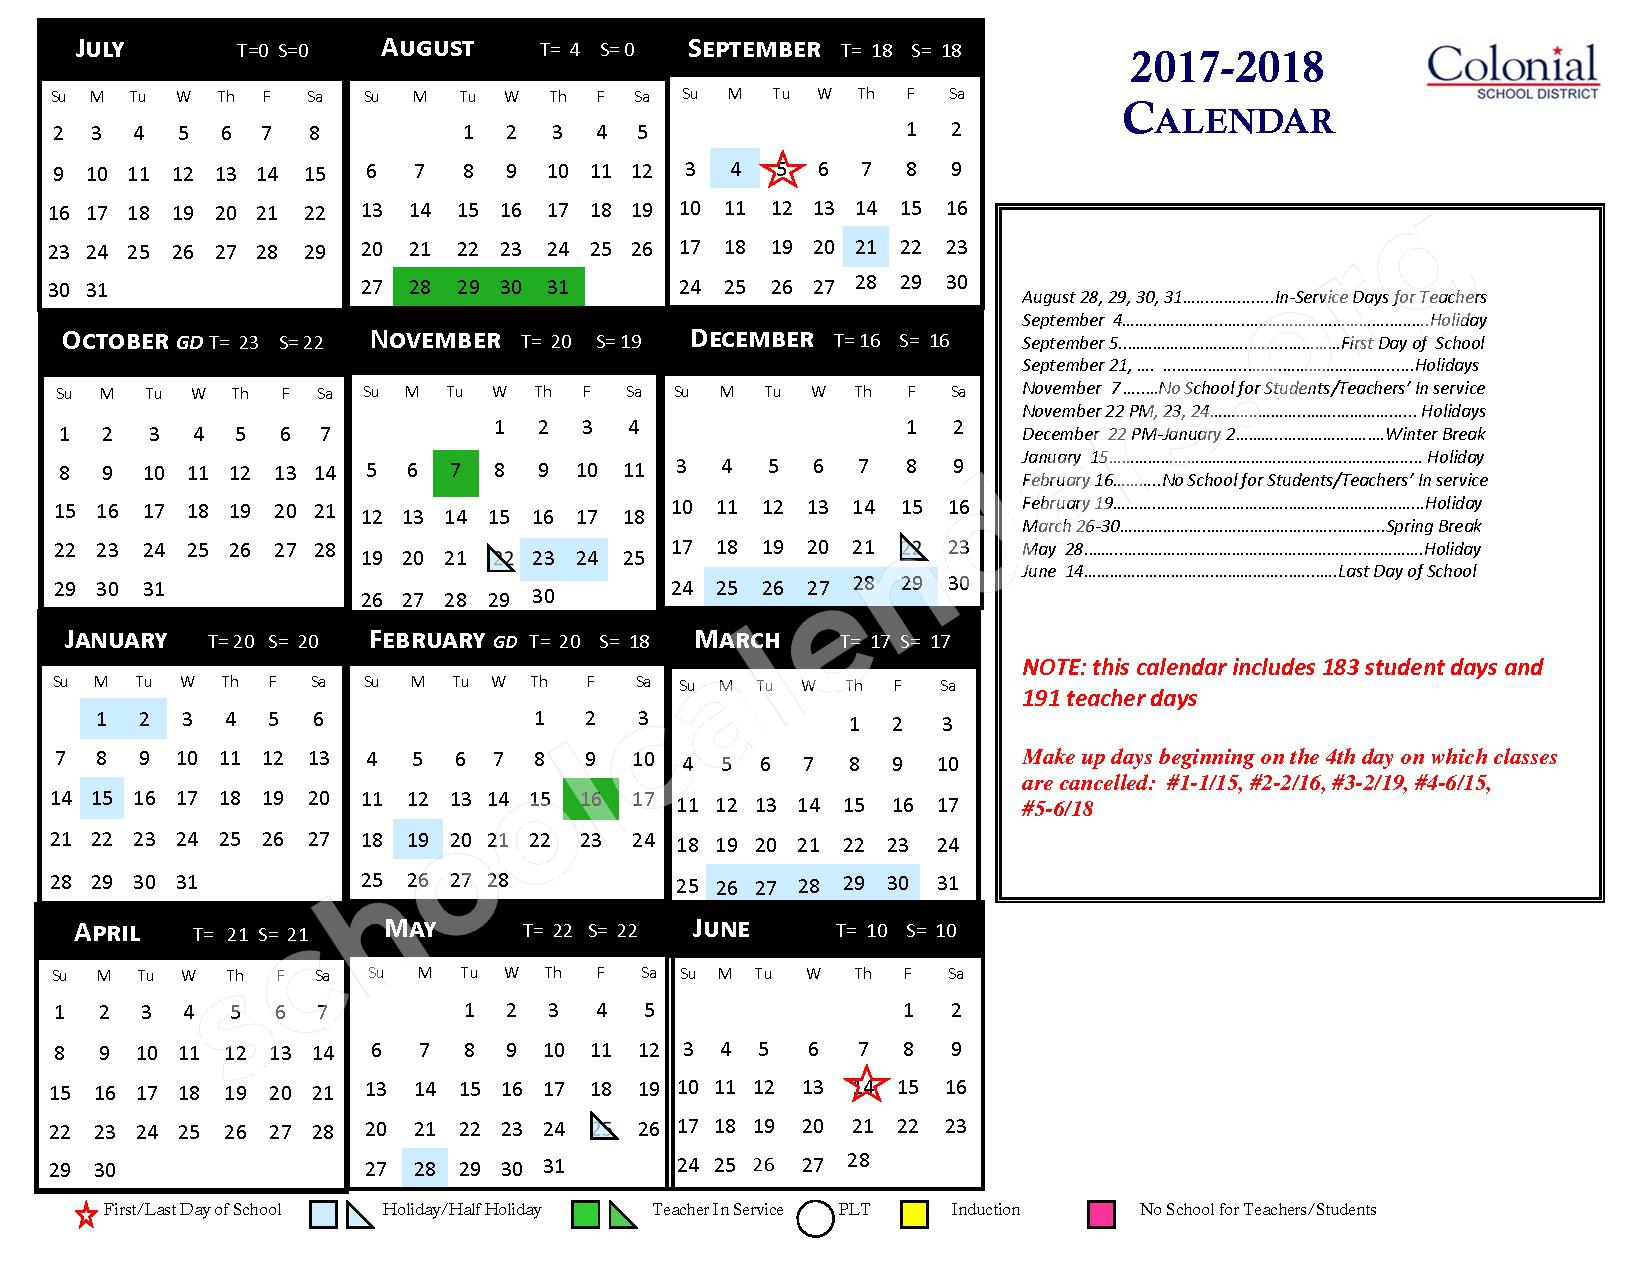 2017 - 2018 District Calendar – Conshohocken Elementary School – page 1